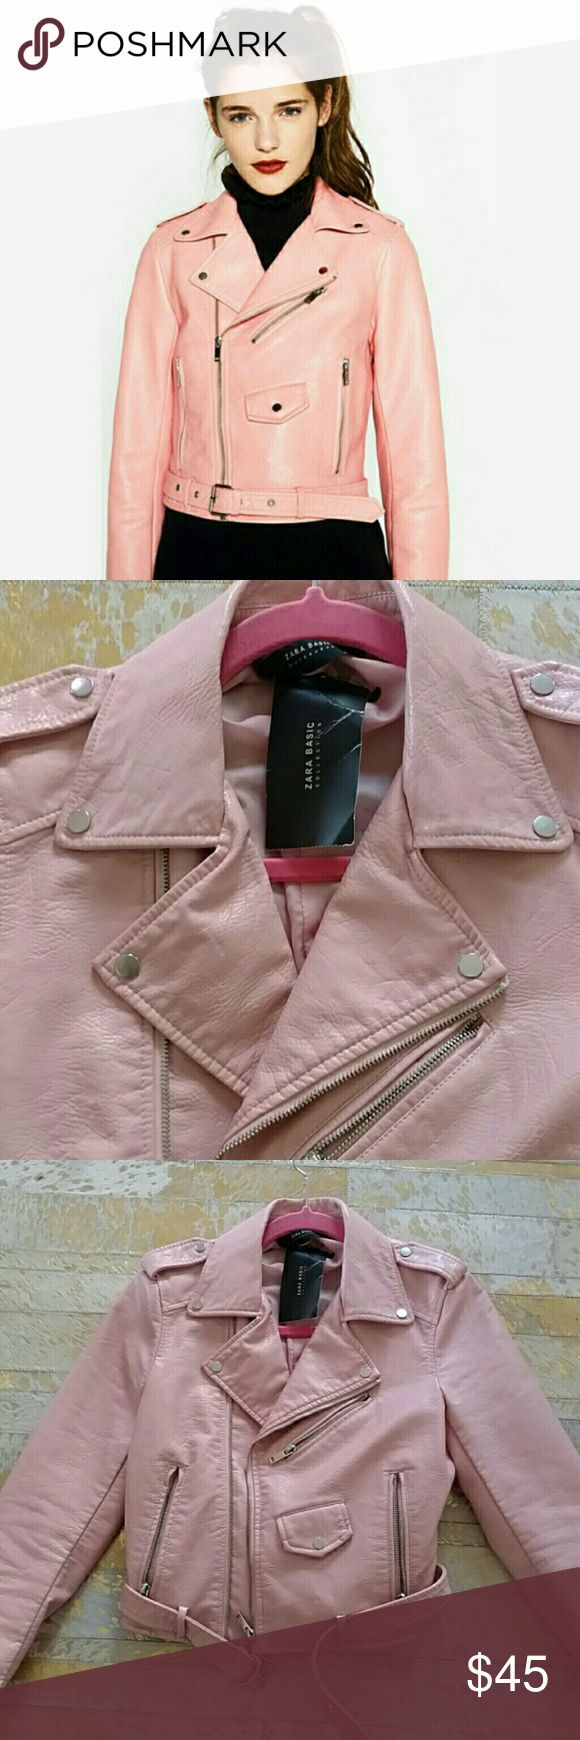 EUC Zara pink faux leather motorcycle jacket Faux